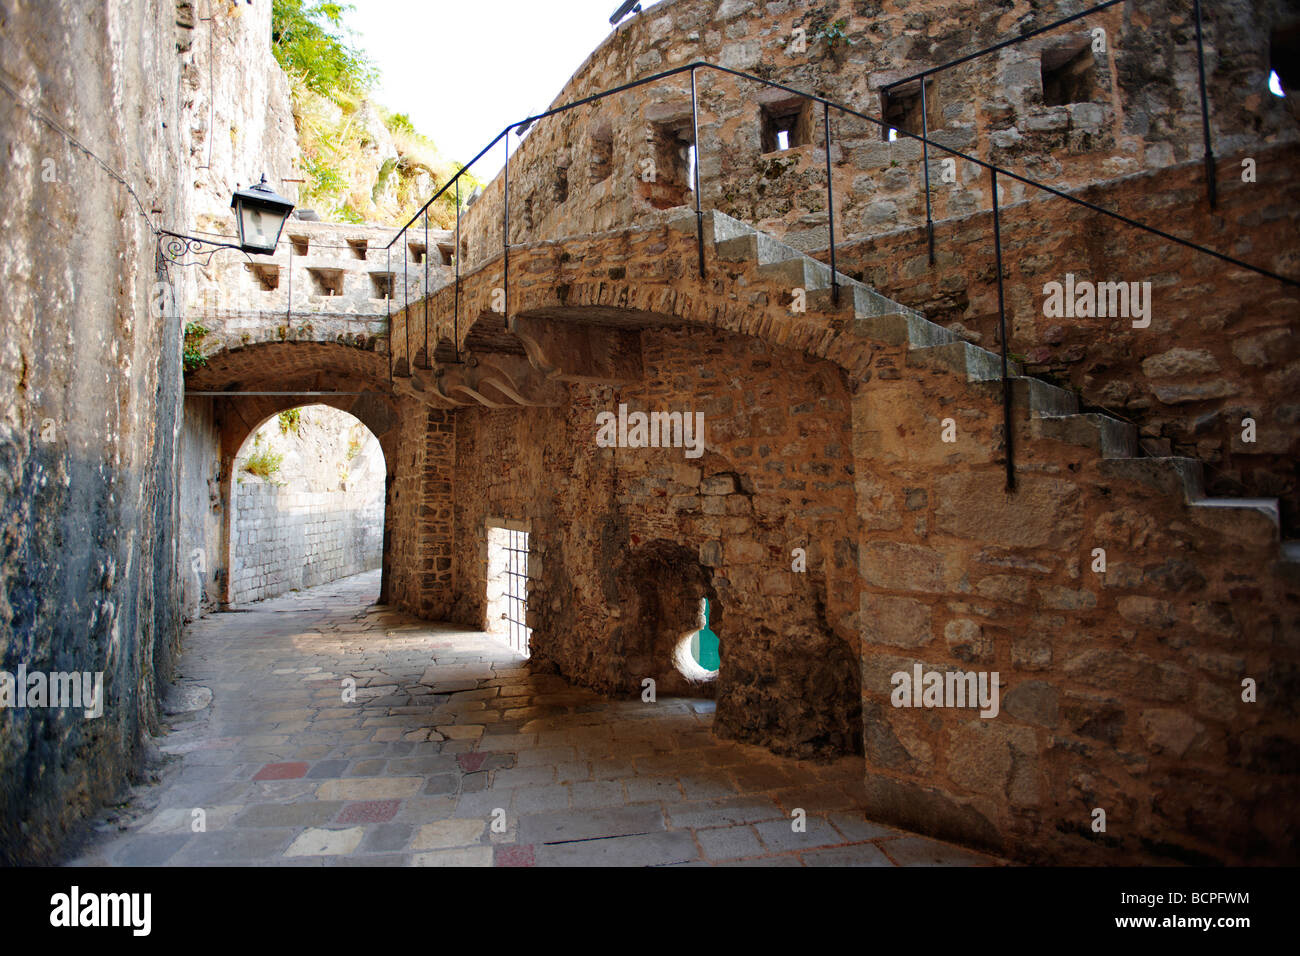 Old medieval town walls and gate - Kotor - Montenegro - Stock Image